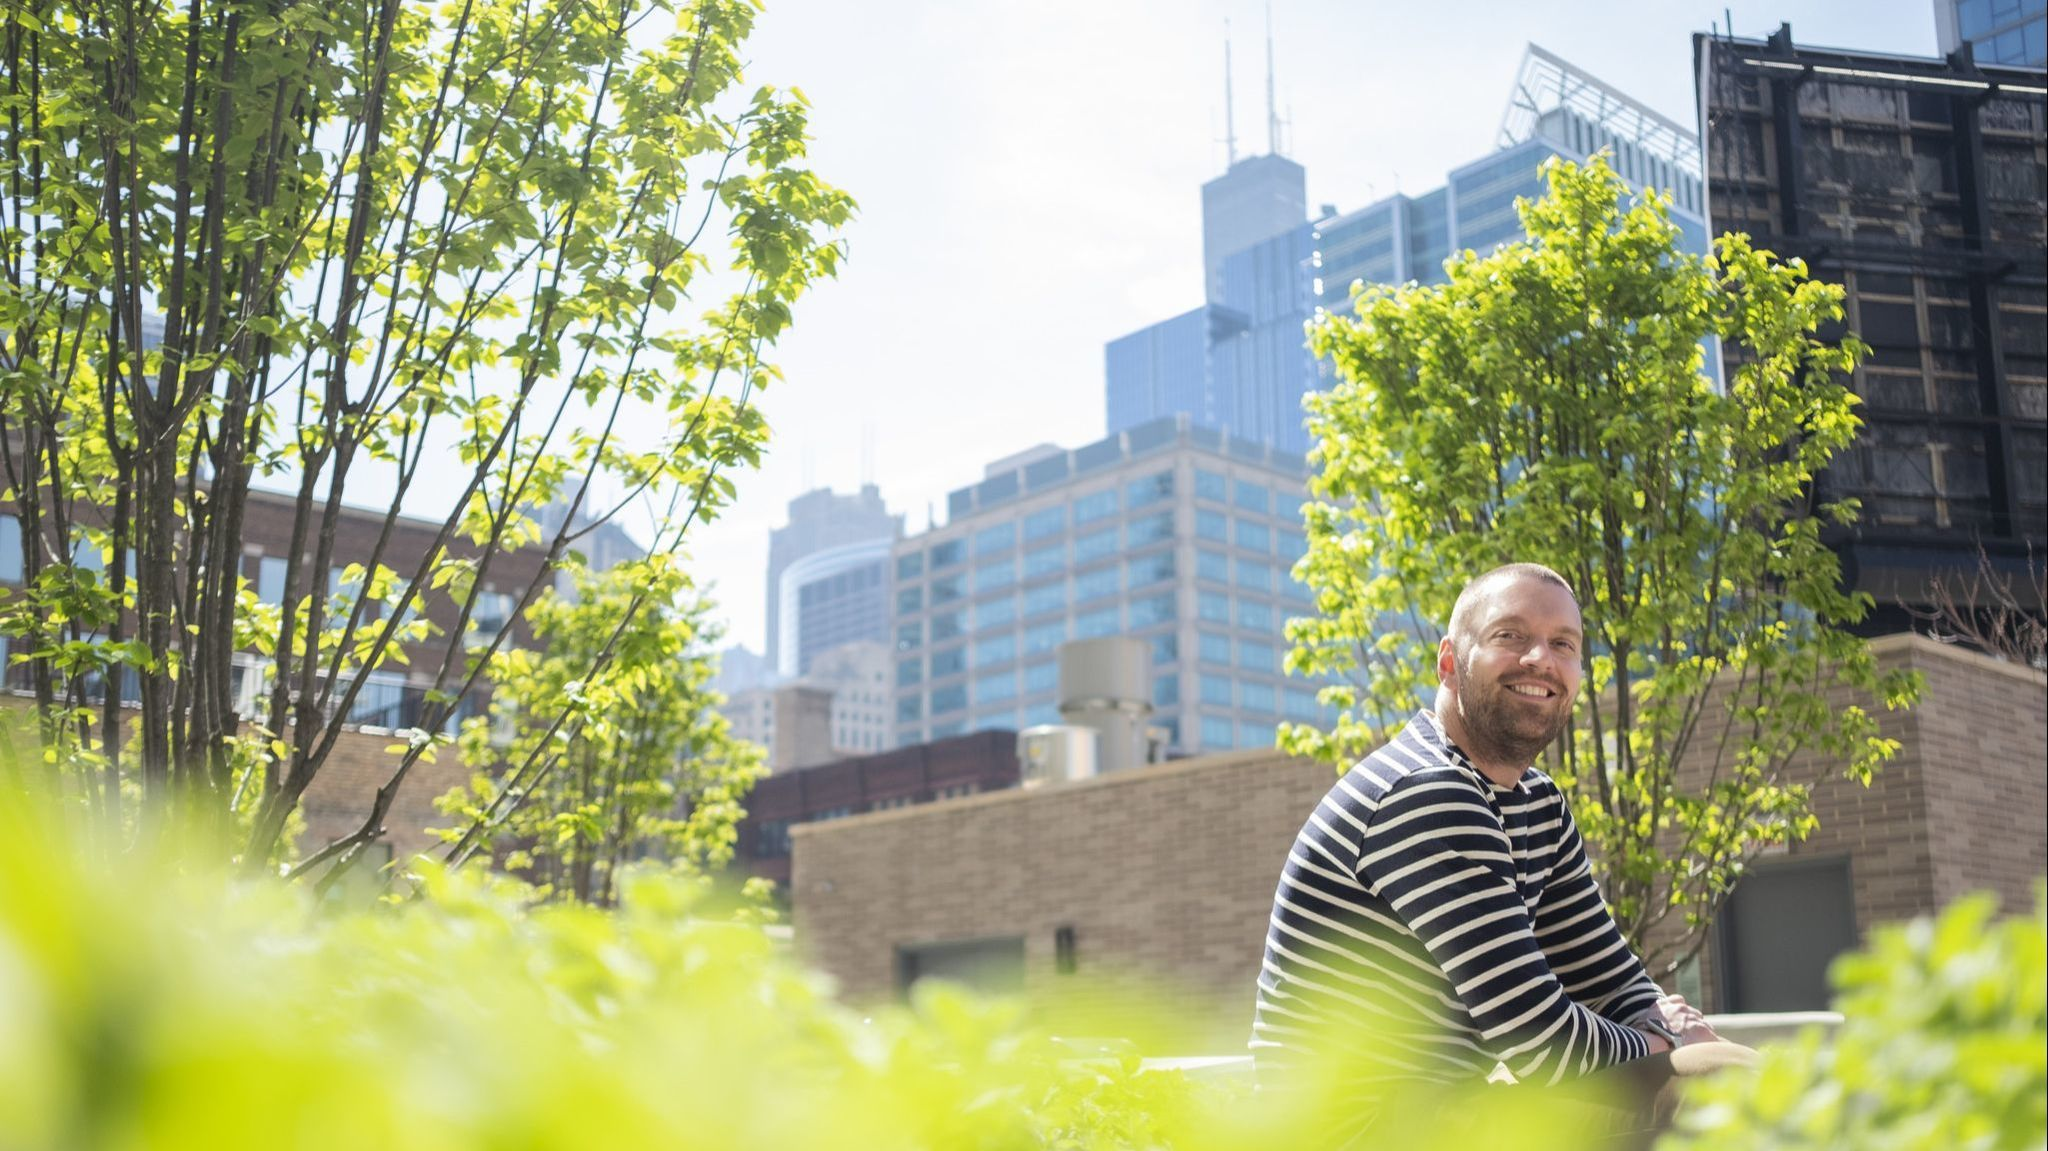 Apartment buildings in Chicago's urban jungle are going green, from produce gardens to rooftop trees